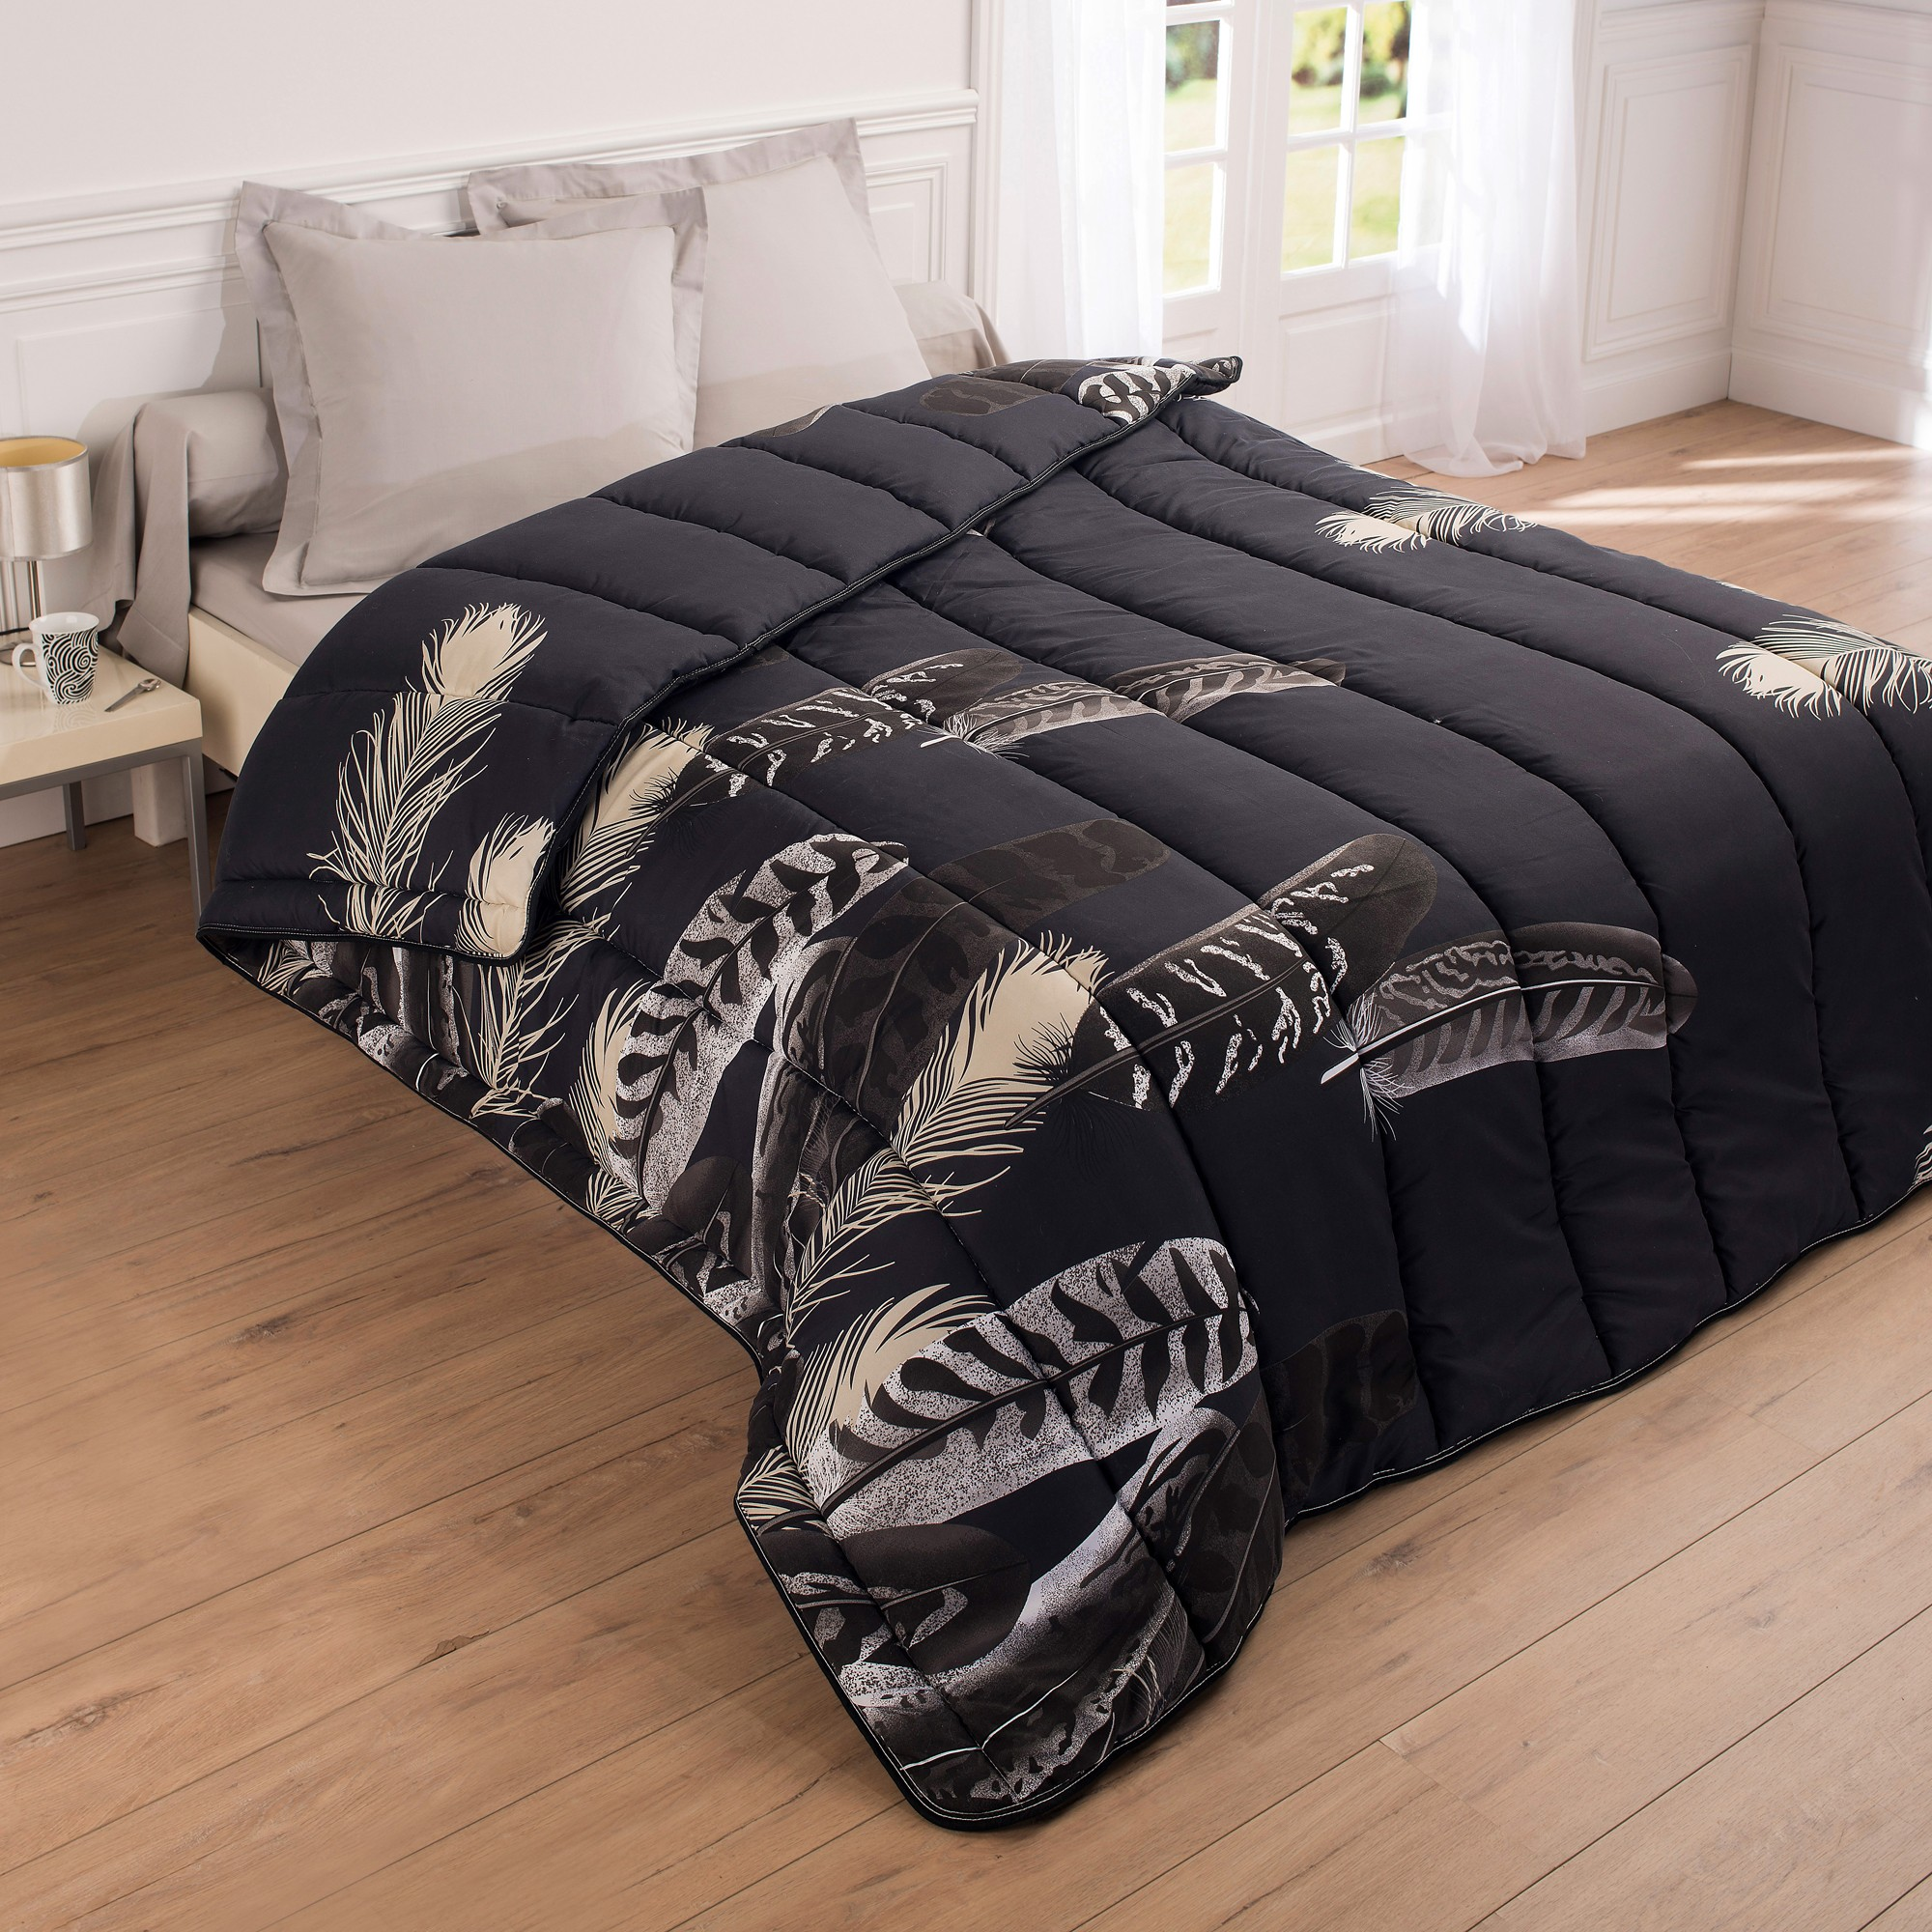 couette microfibre imprim e plumes 400g m2 blancheporte. Black Bedroom Furniture Sets. Home Design Ideas